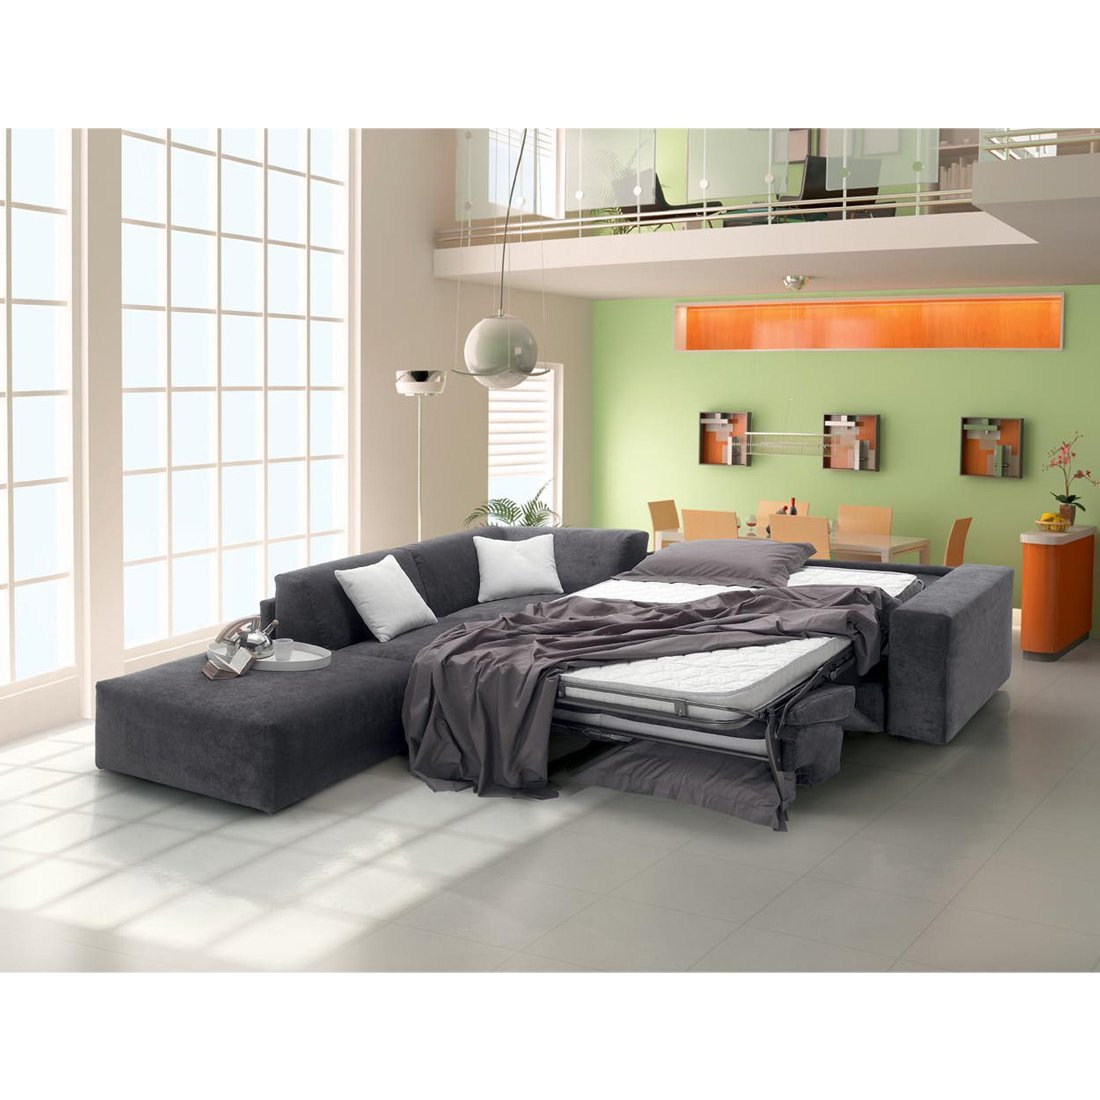 canap d 39 angle convertible gris meubles et atmosph re. Black Bedroom Furniture Sets. Home Design Ideas